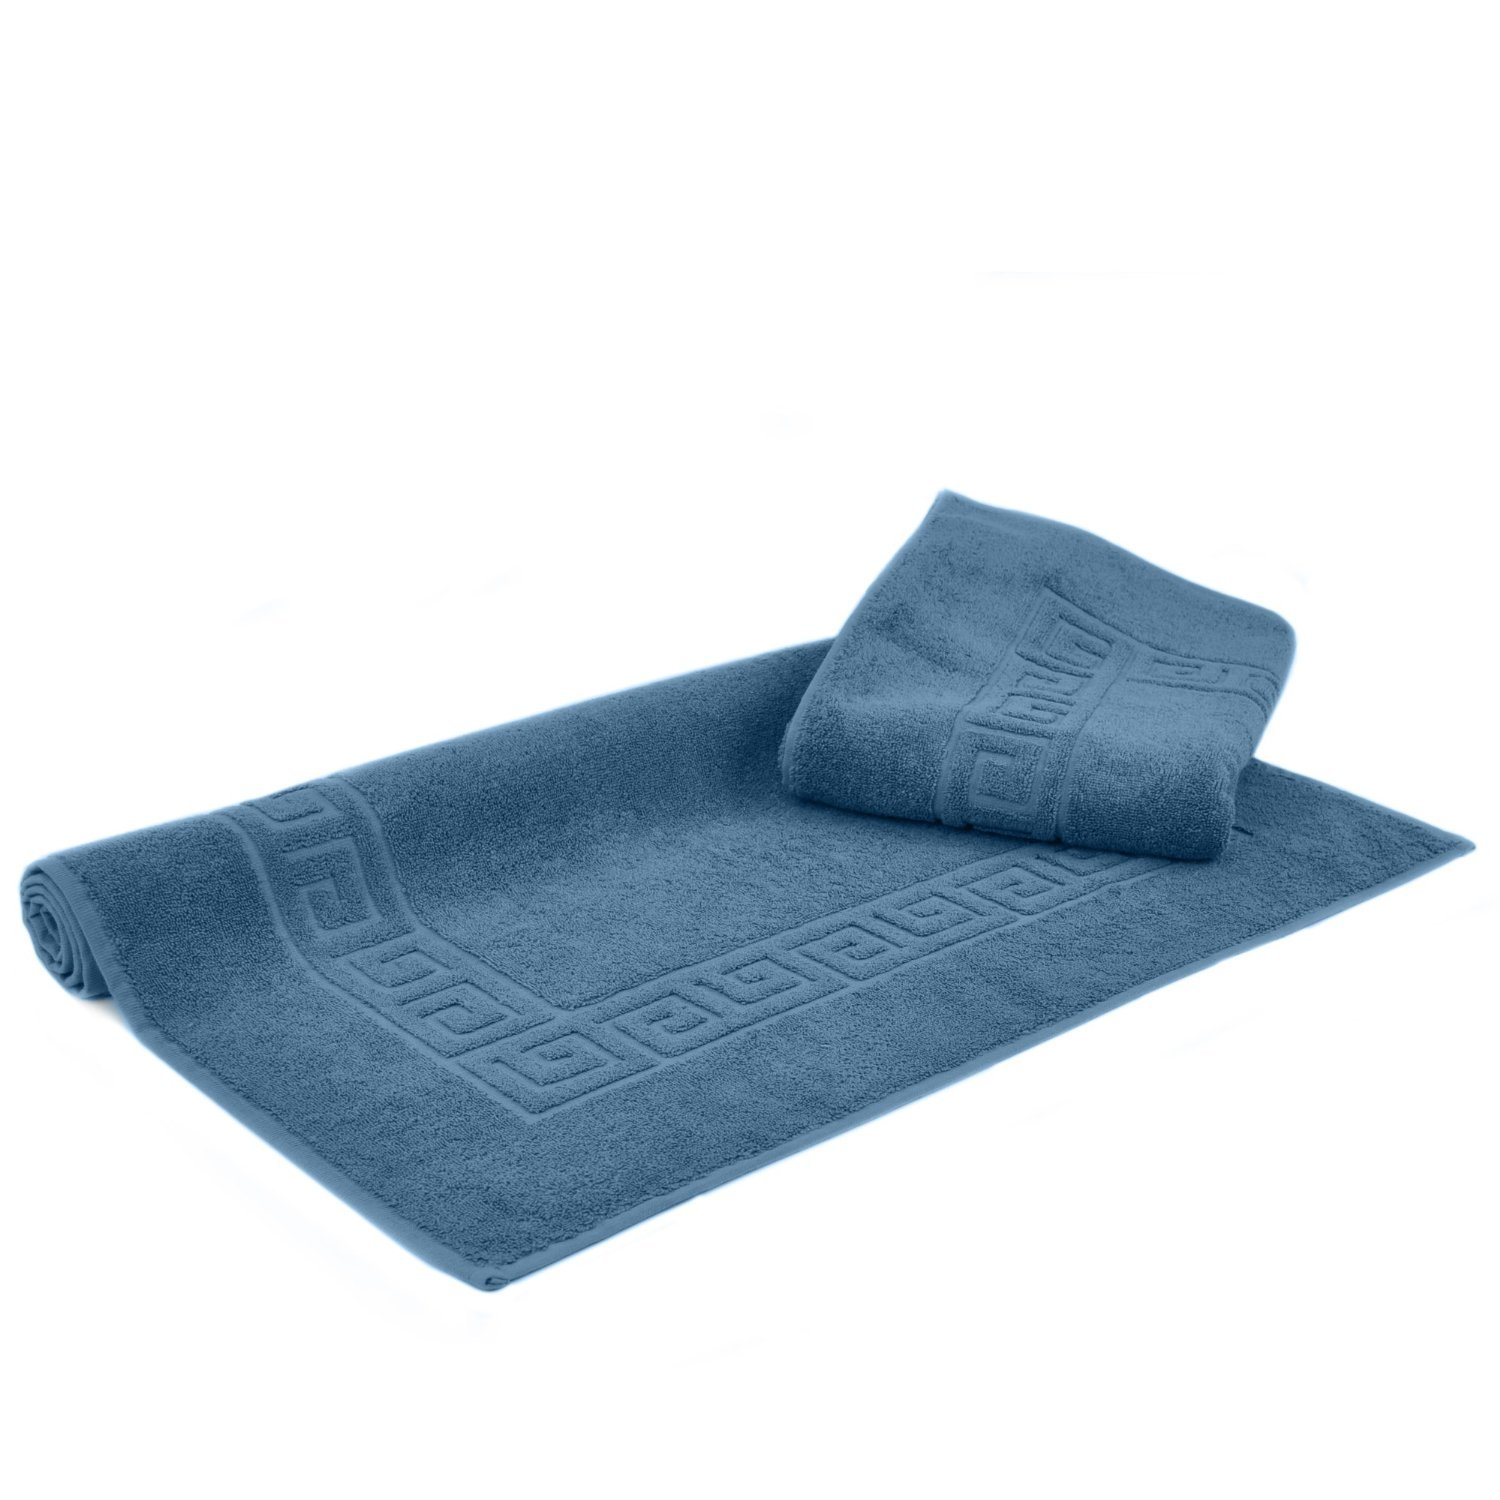 Discontinue Towels 100 Turkish Cotton Wedgewood